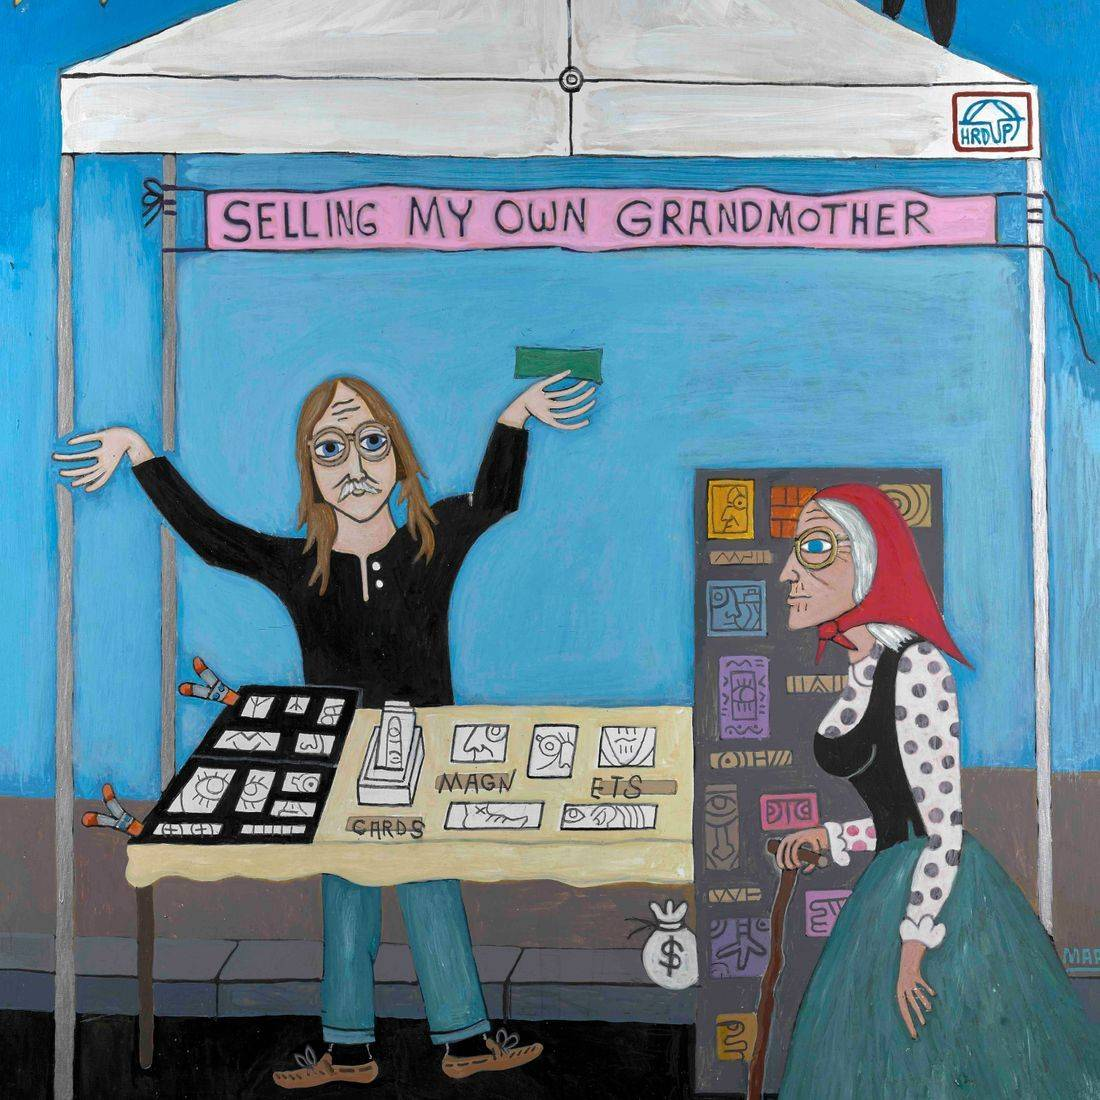 Michael Andryc,  Self Portrait, Artist, Art Festival, Art Booth, Grandmother, Michael Andryc Self-Portrait, Grandmother, Business